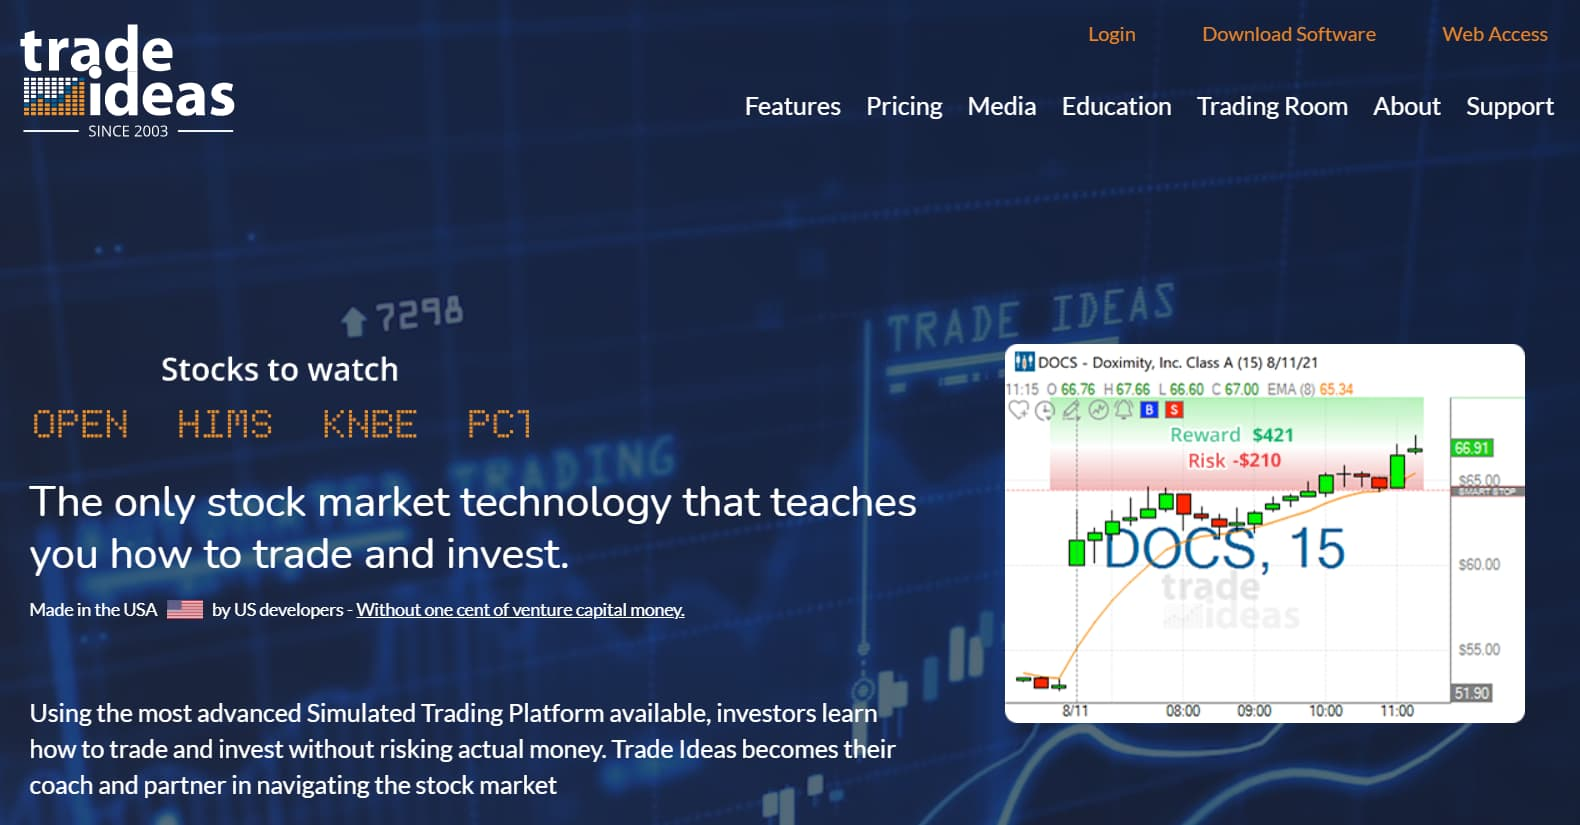 trade ideas stock analysis software for day tradres